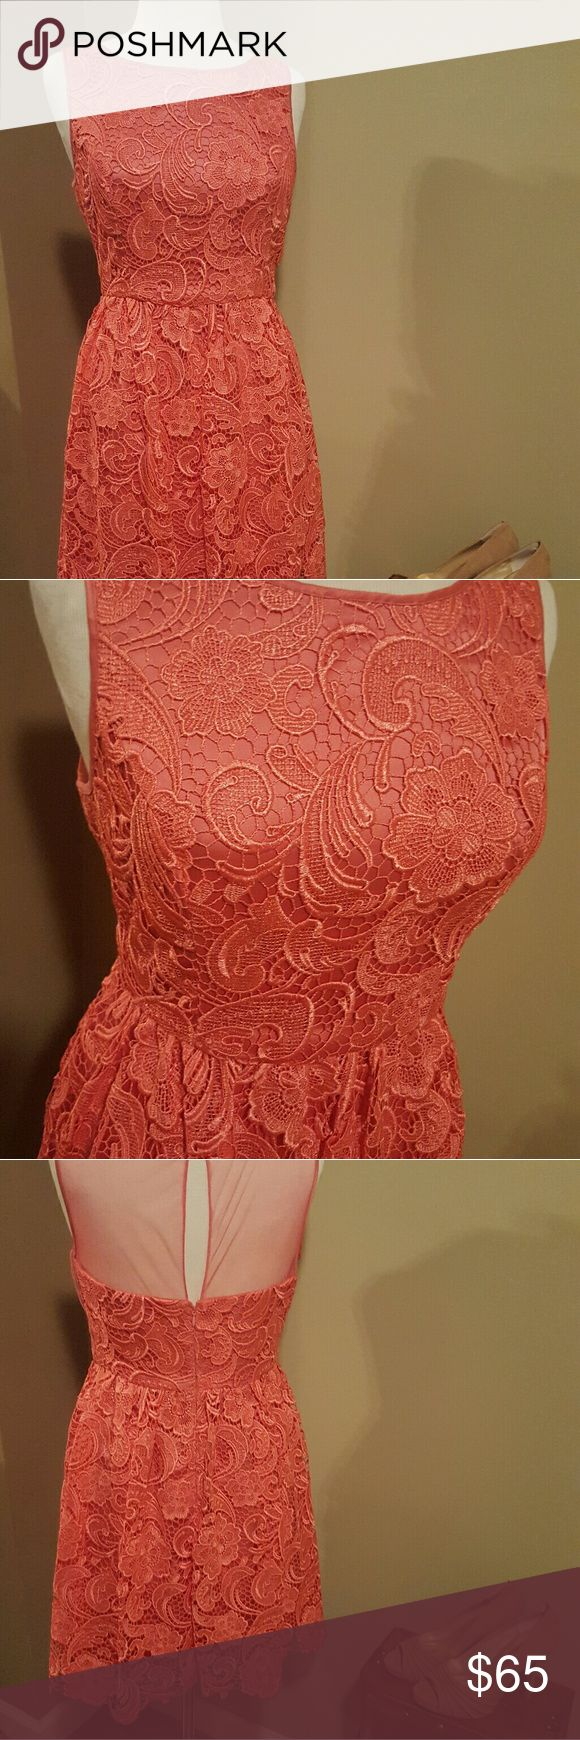 Adrianna Papell Coral Lace Dress Adrianna Papell Coral Lace Dress, size 8. Worn twice. Adrianna Papell Dresses Wedding